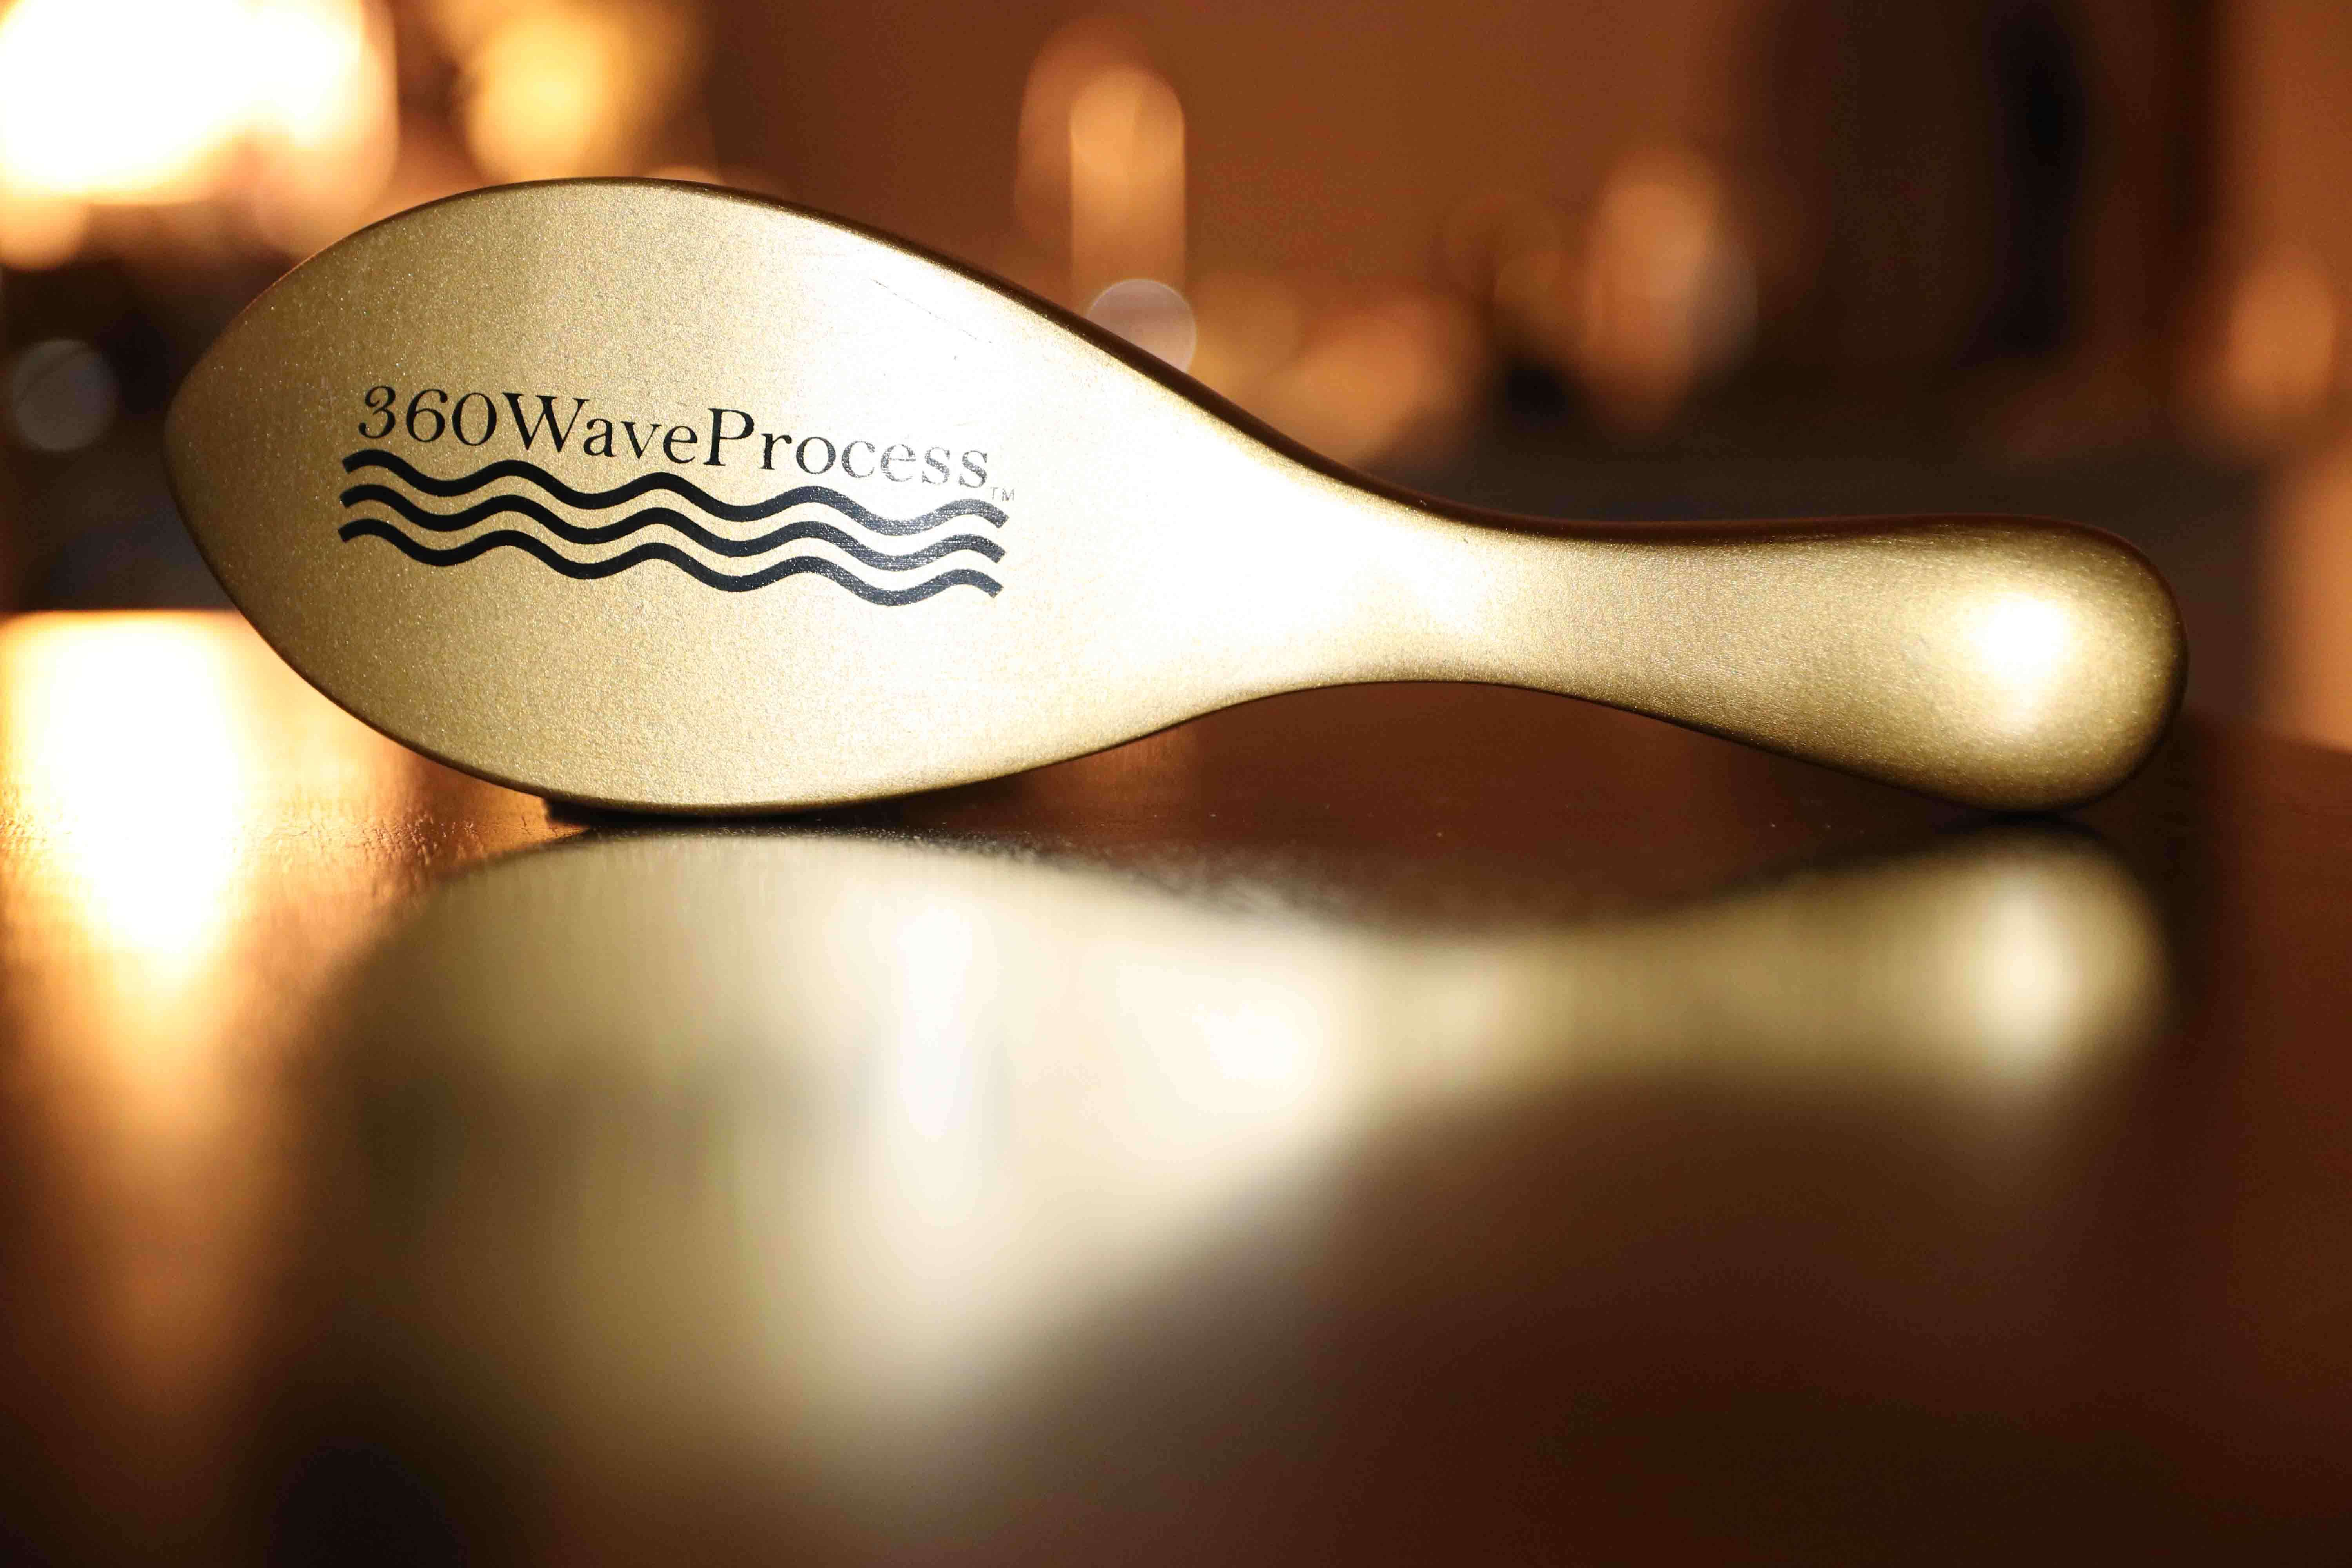 360 wave brush gold handle